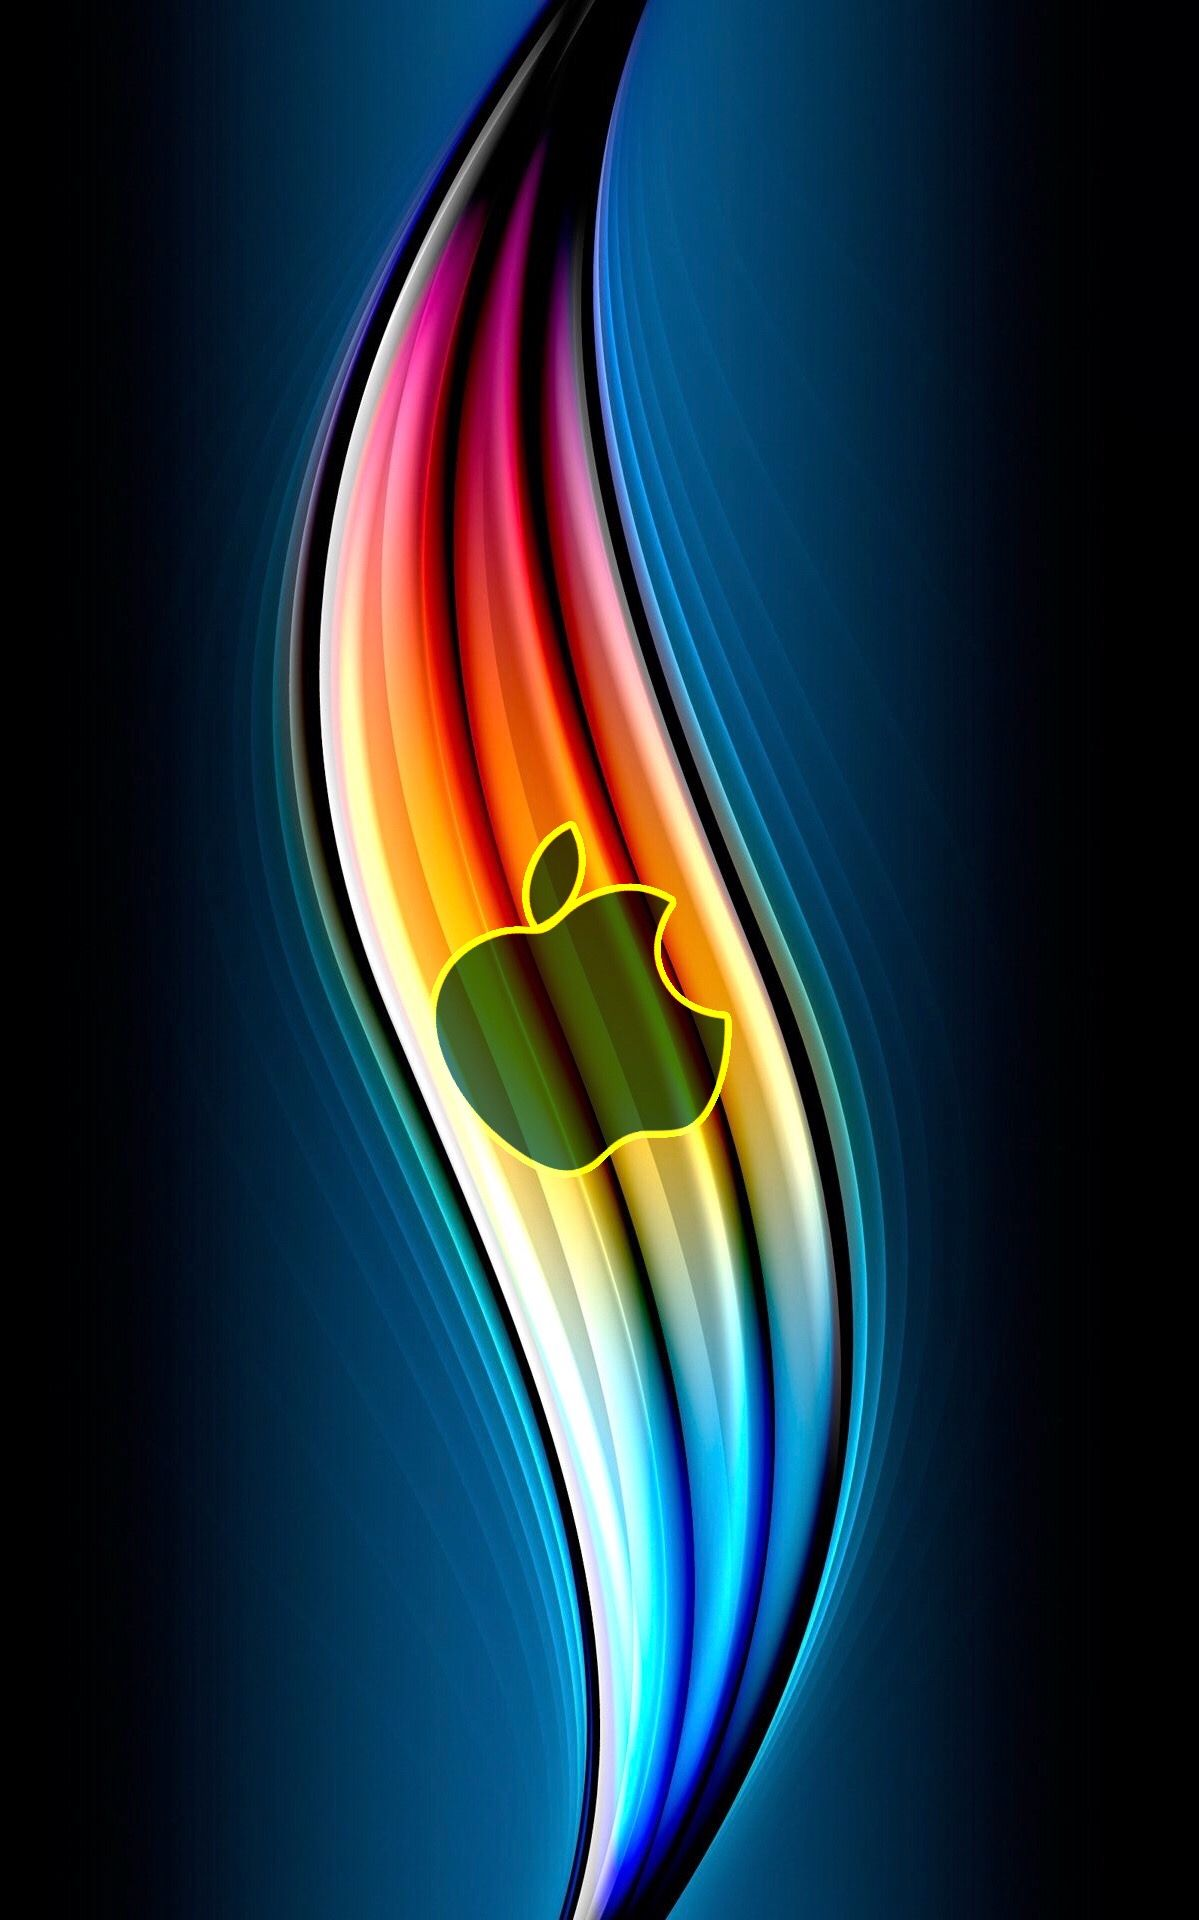 For Apple Ppl Iphone Homescreen Wallpaper Apple Logo Wallpaper Iphone Apple Wallpaper